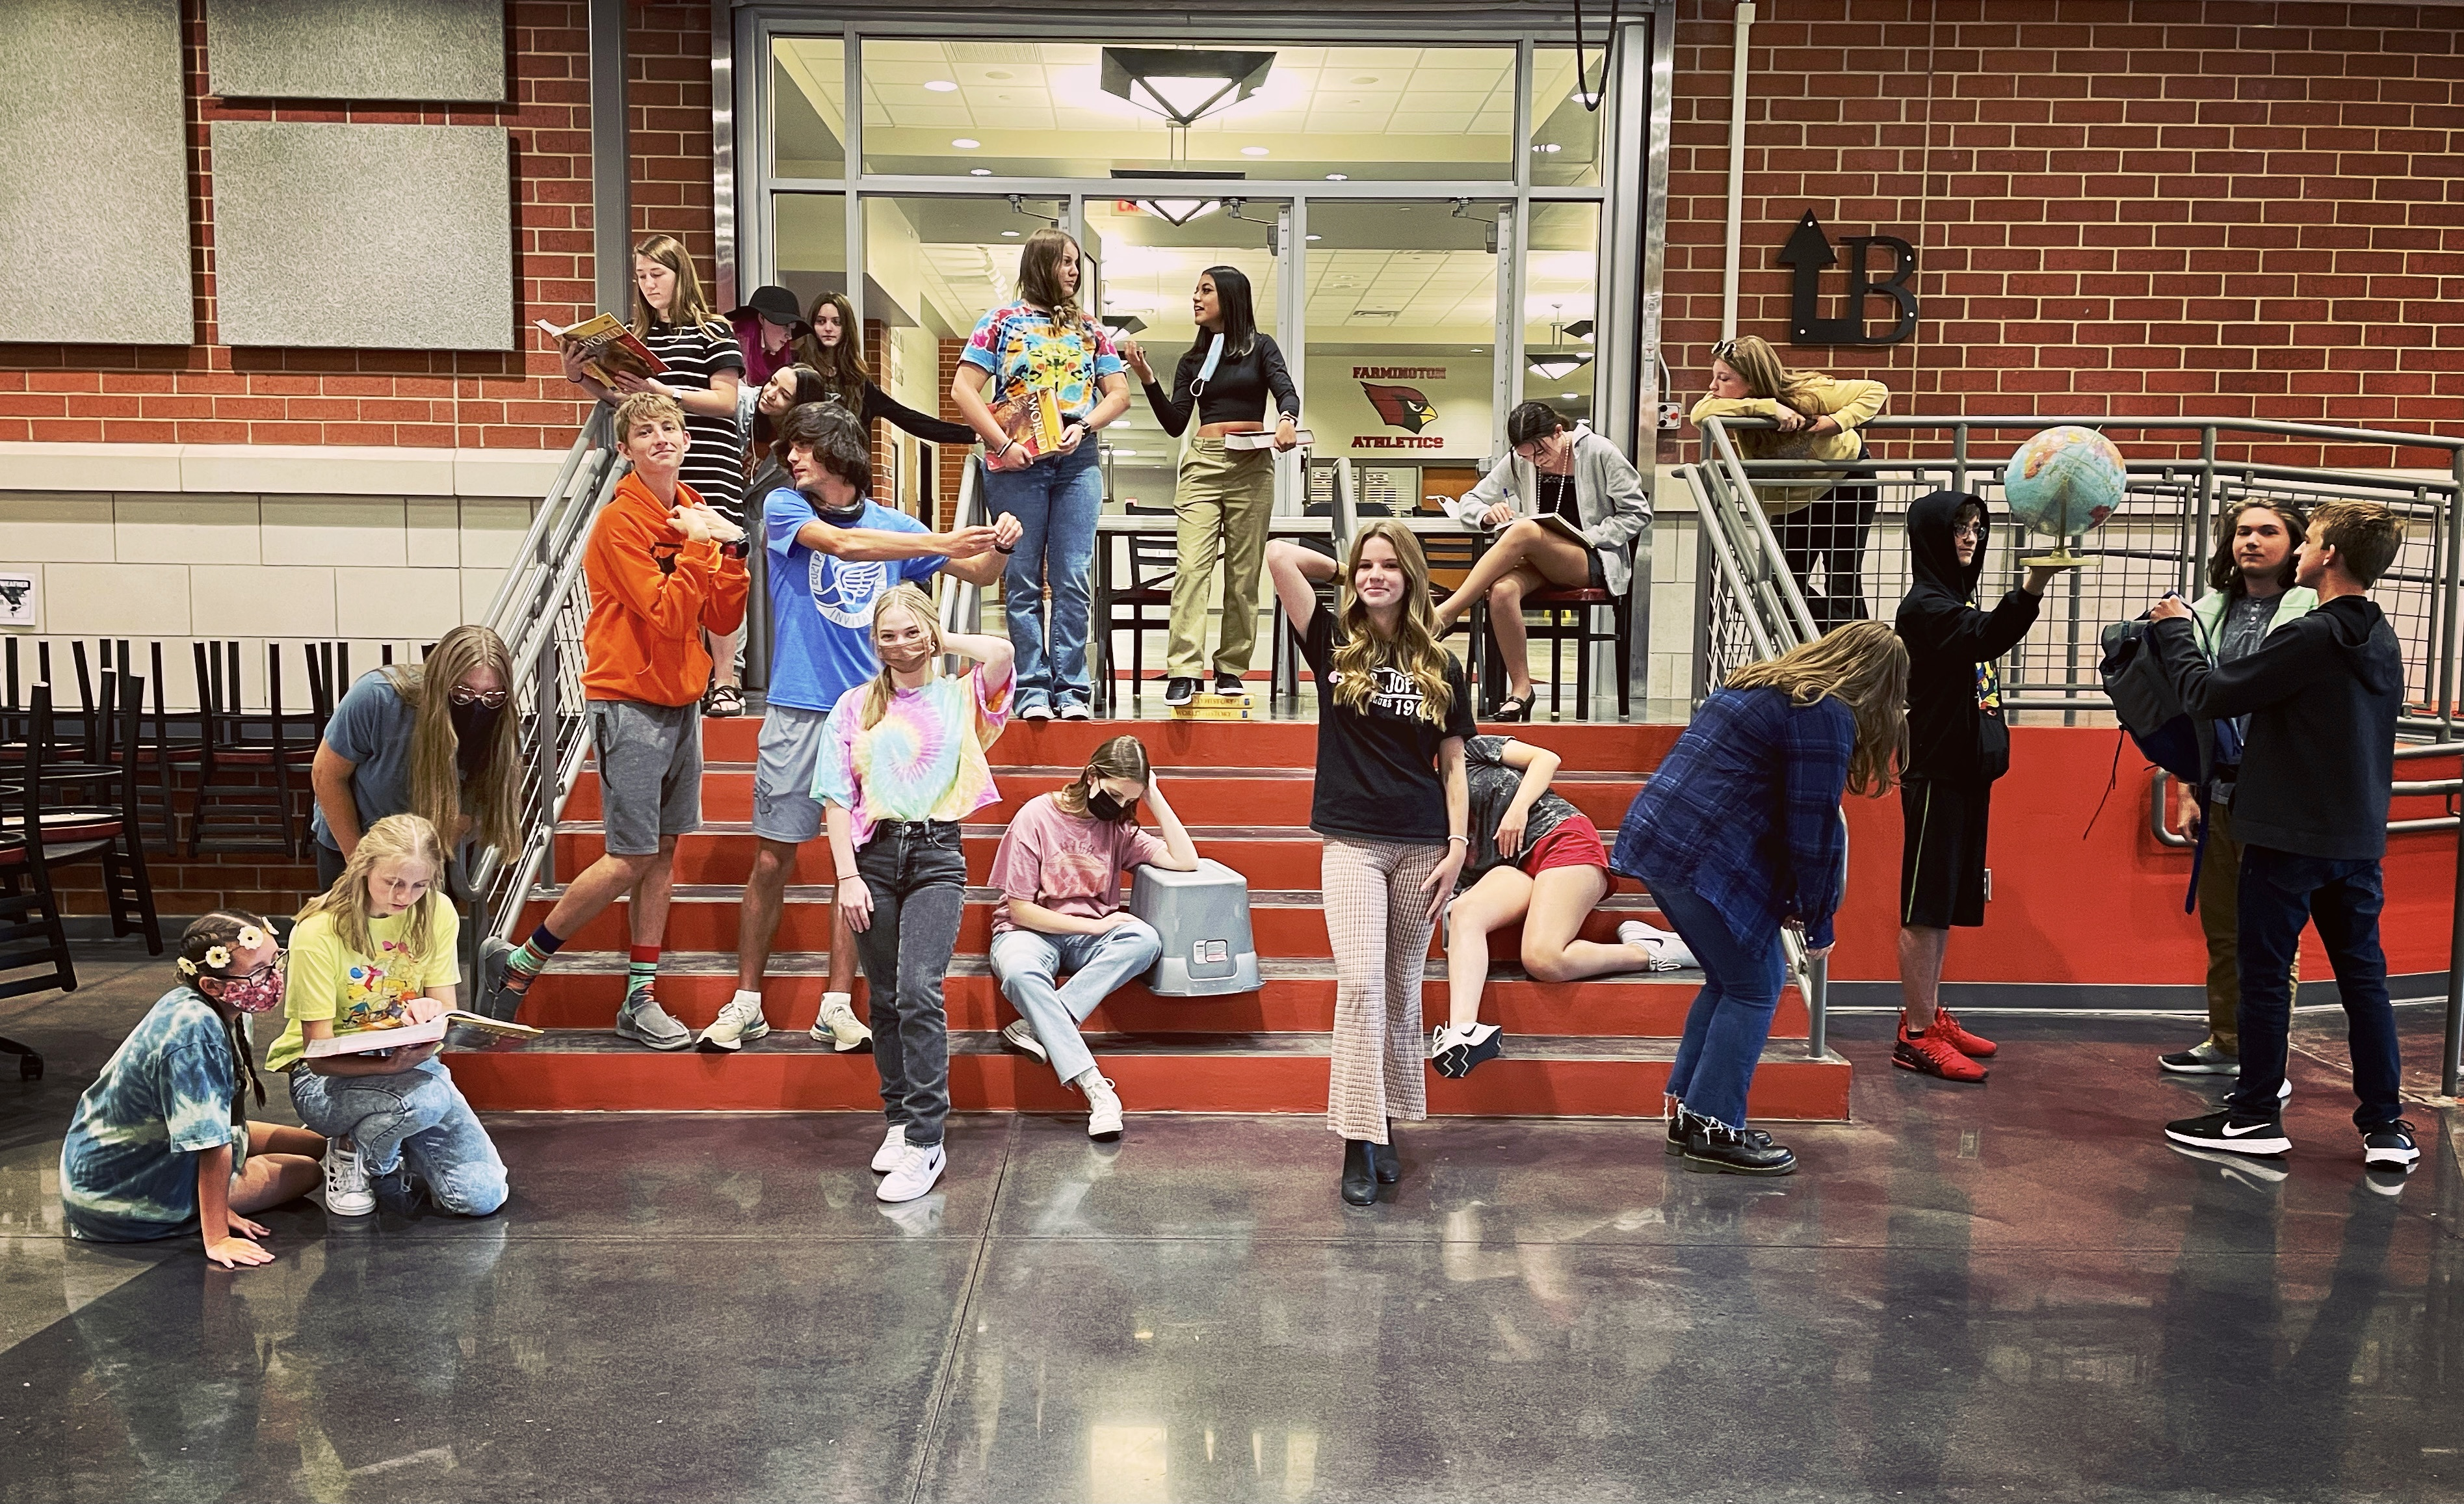 Students posed to recreate Raphael's School of Athens artwork